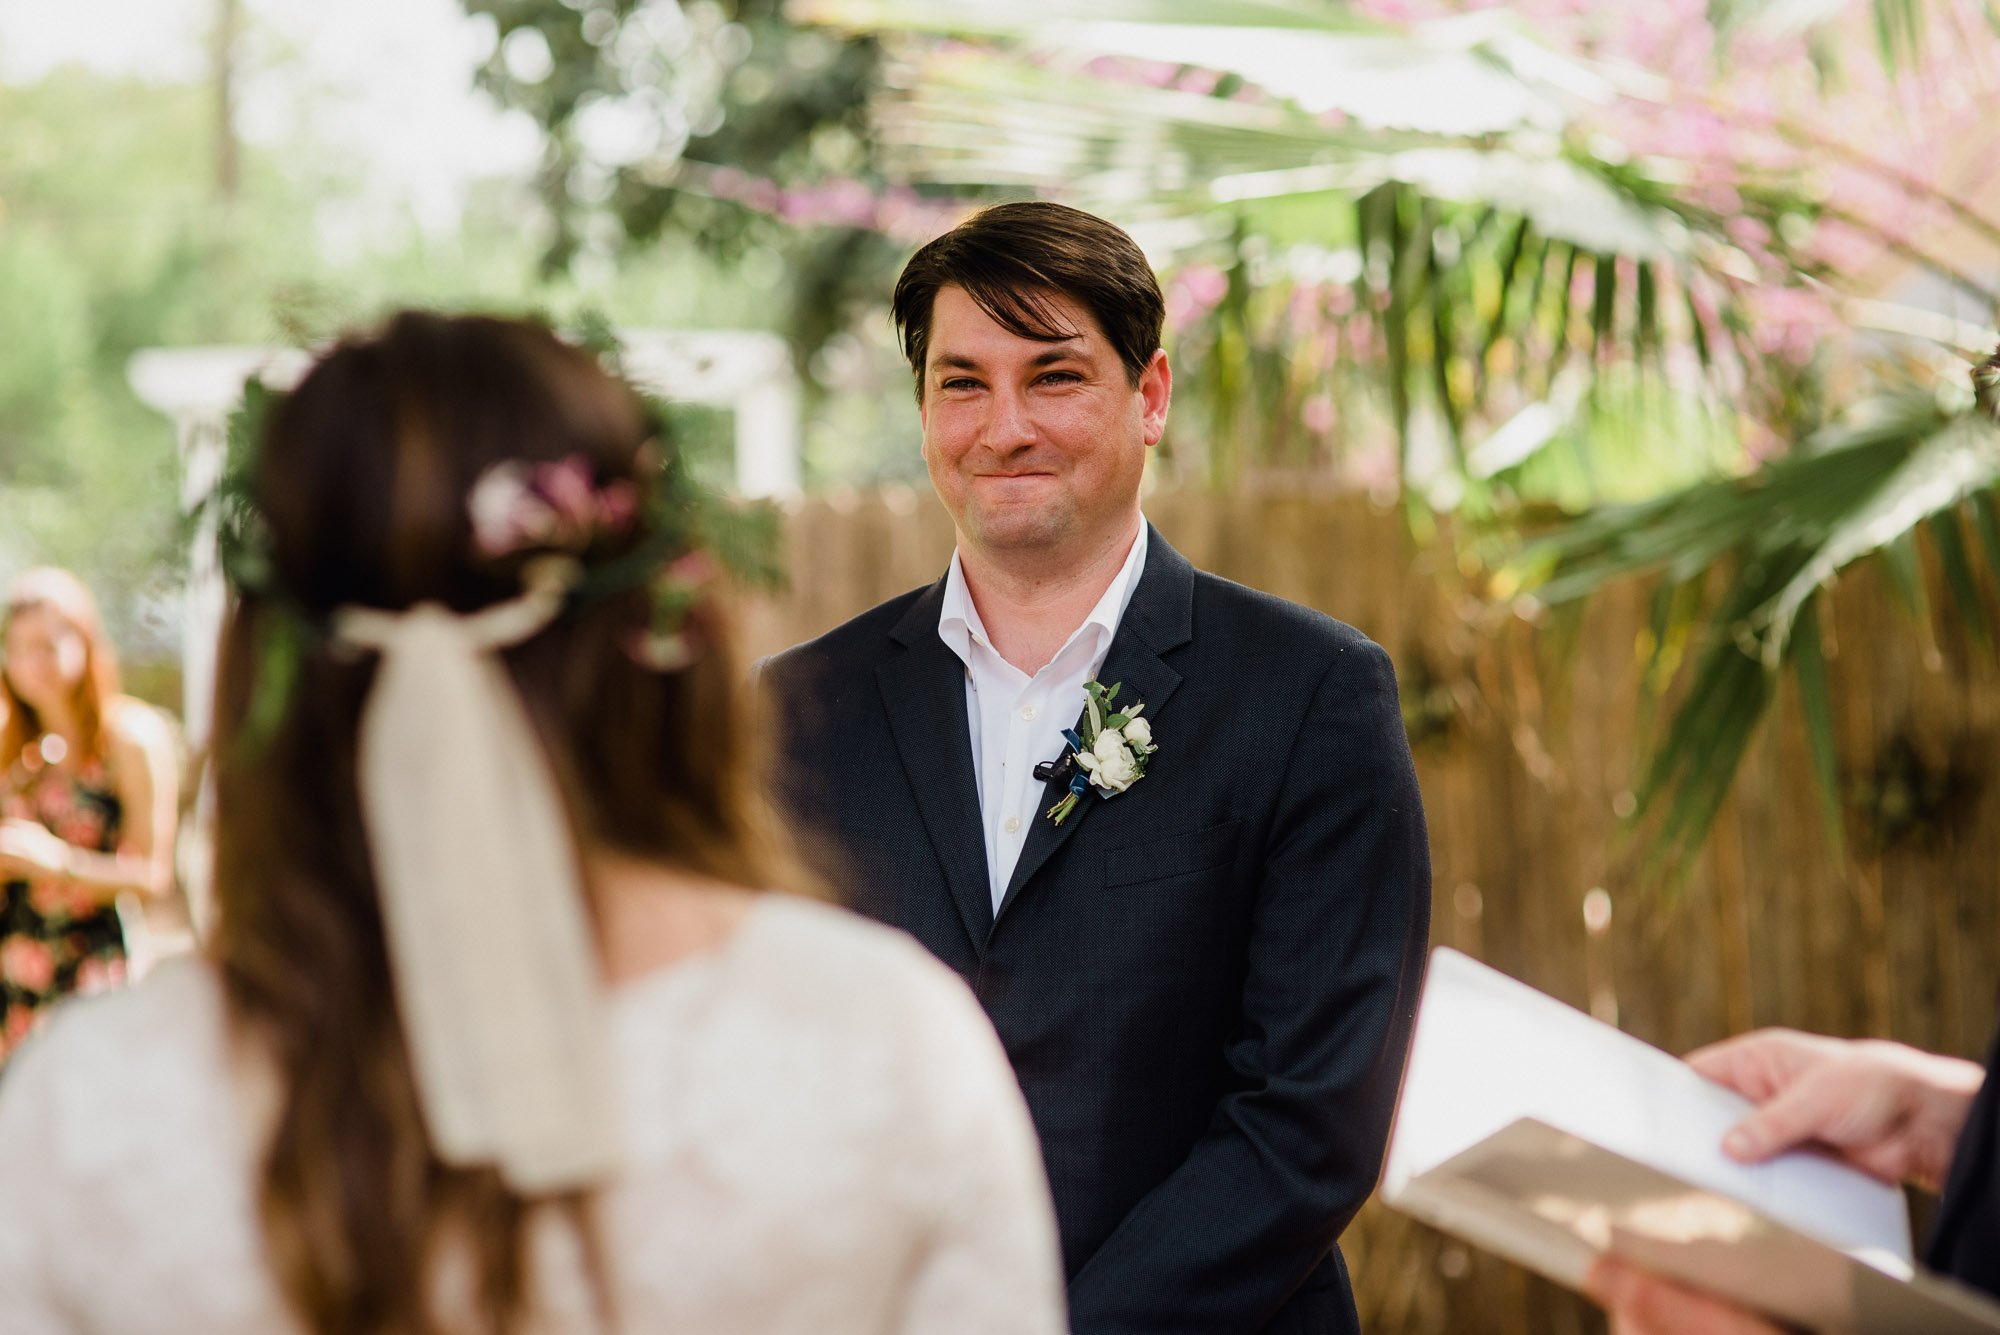 groom smiling at his bride at a backyard wedding in san antonio at king william manor